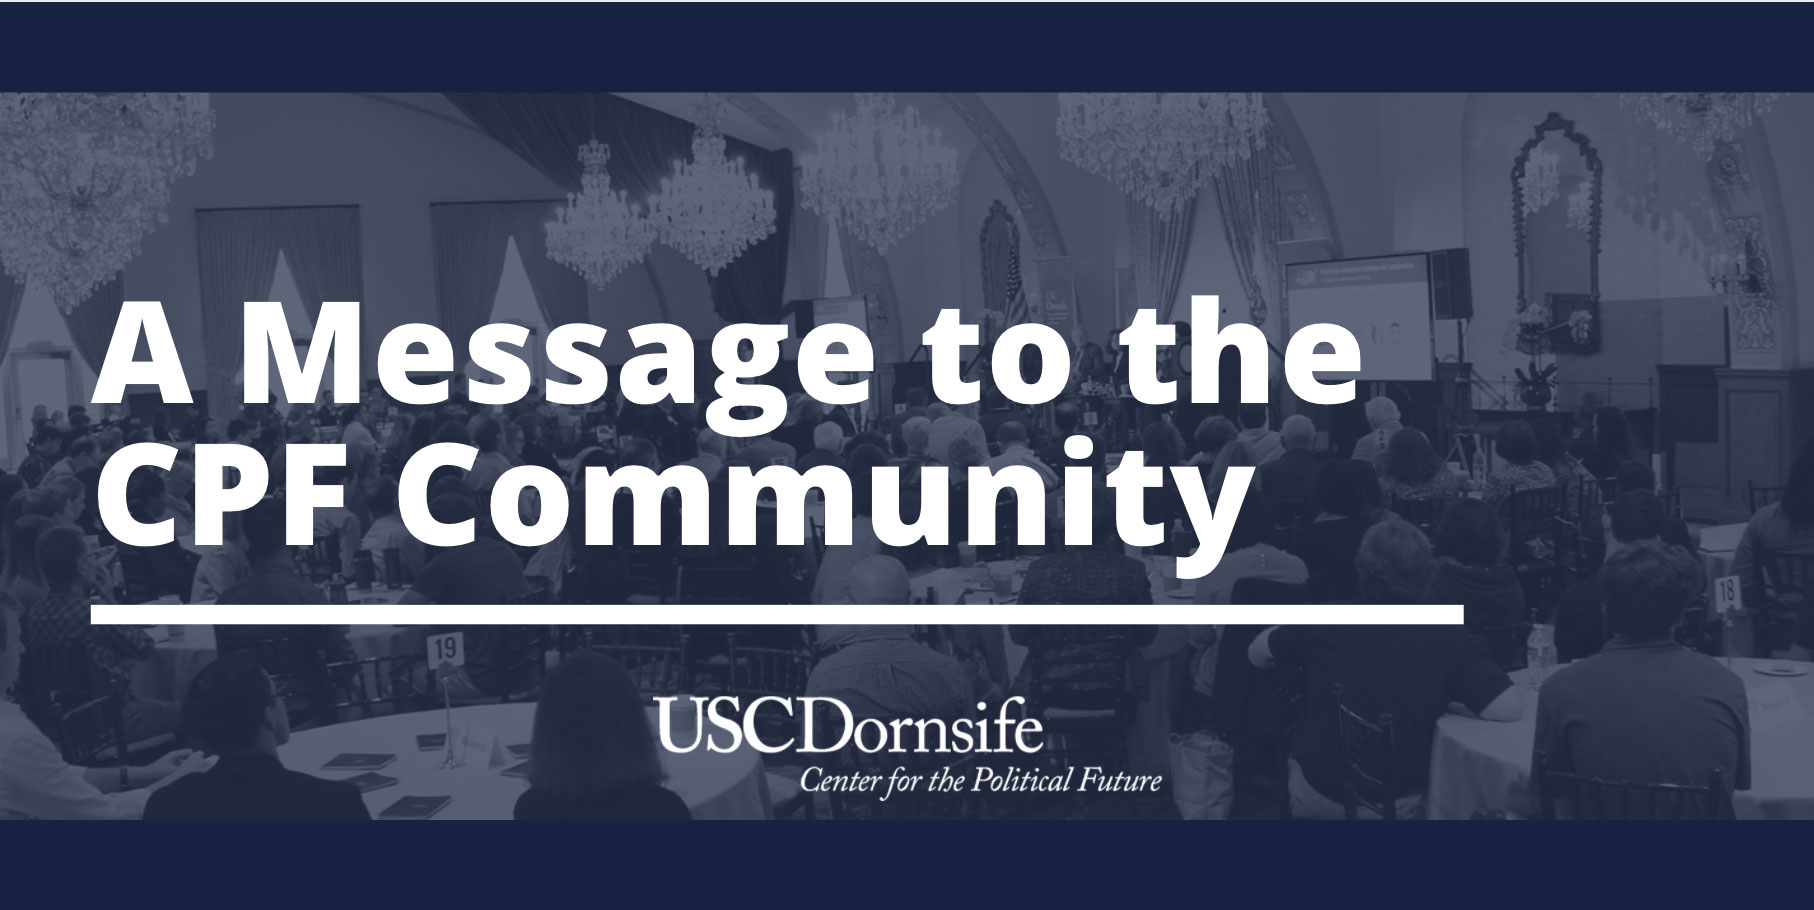 Statements from the USC Dornsife Center for the Political Future